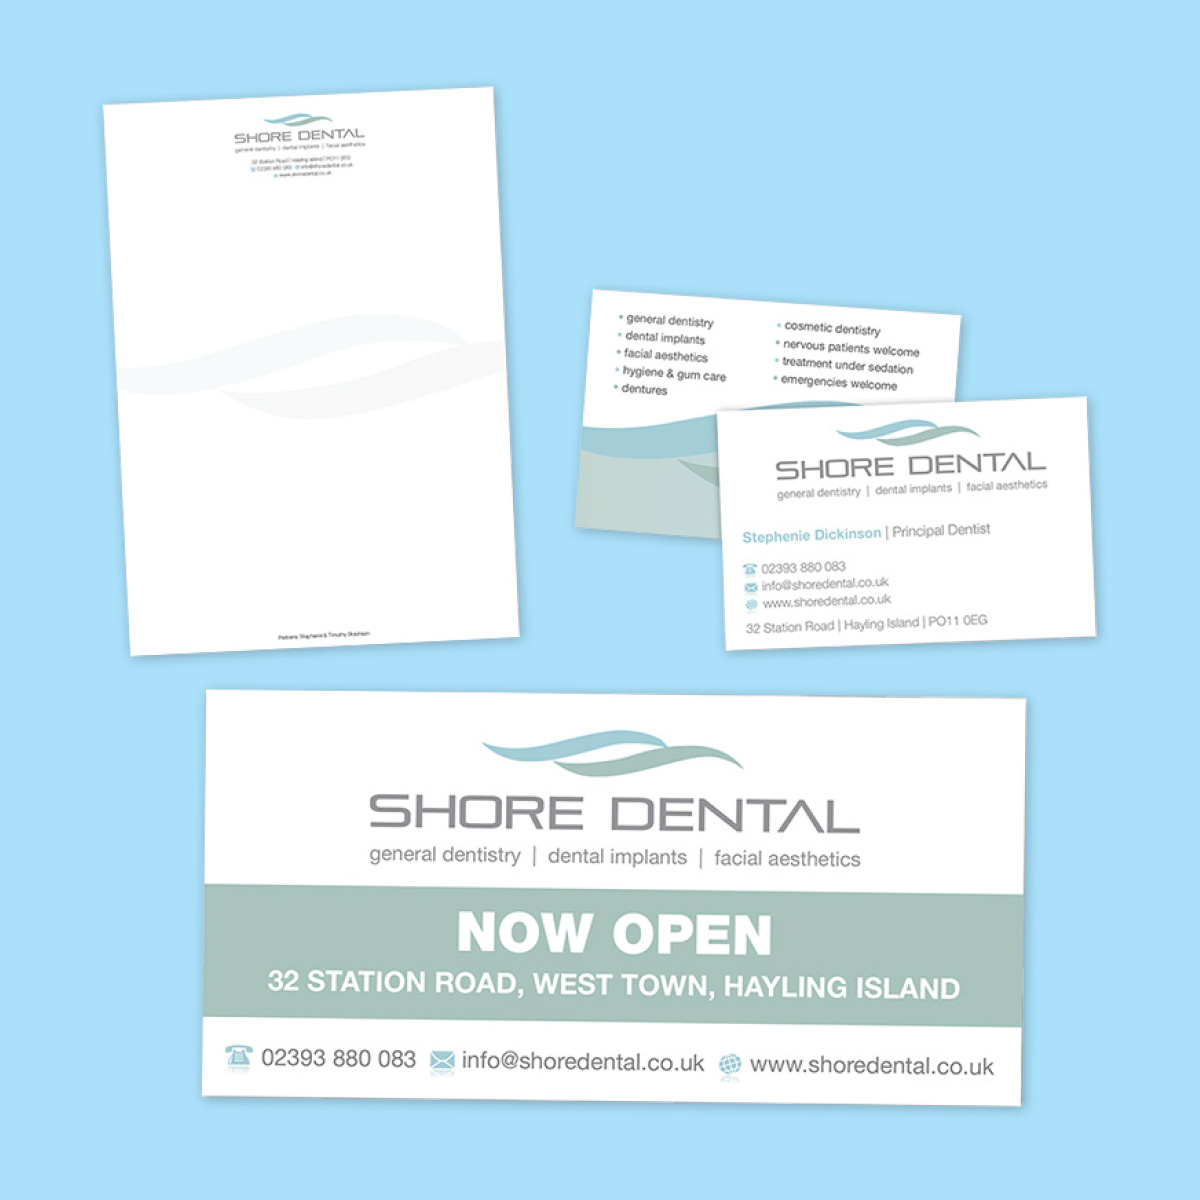 Stationery Printing Hampshire | West Sussex | Surrey | London